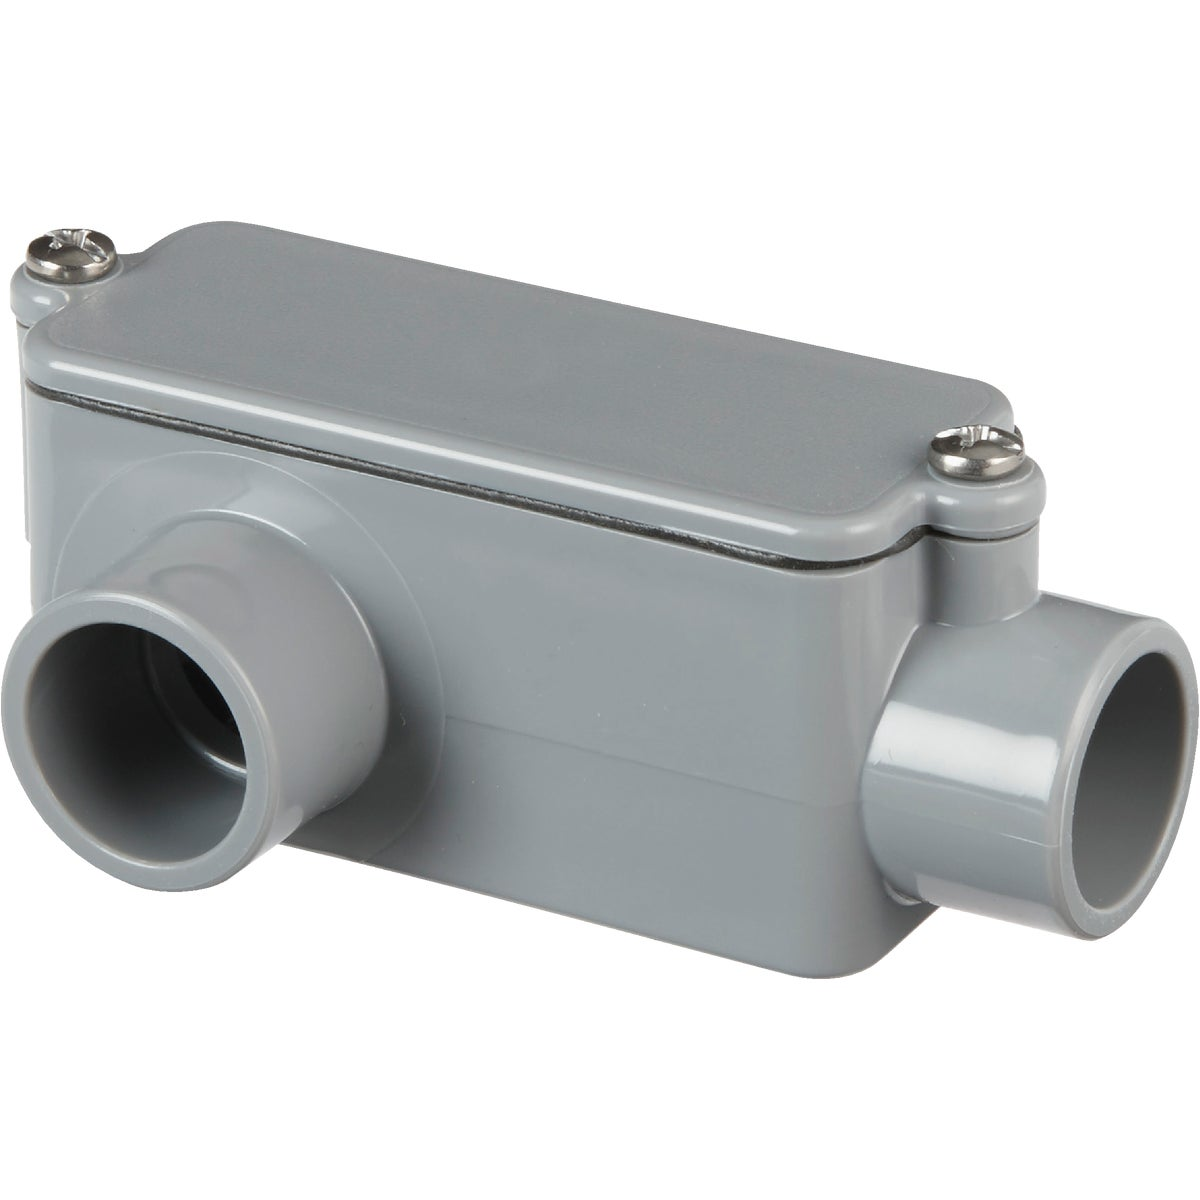 """1/2"""" LR ACCESS FITTING - E985DCTN by Thomas & Betts"""